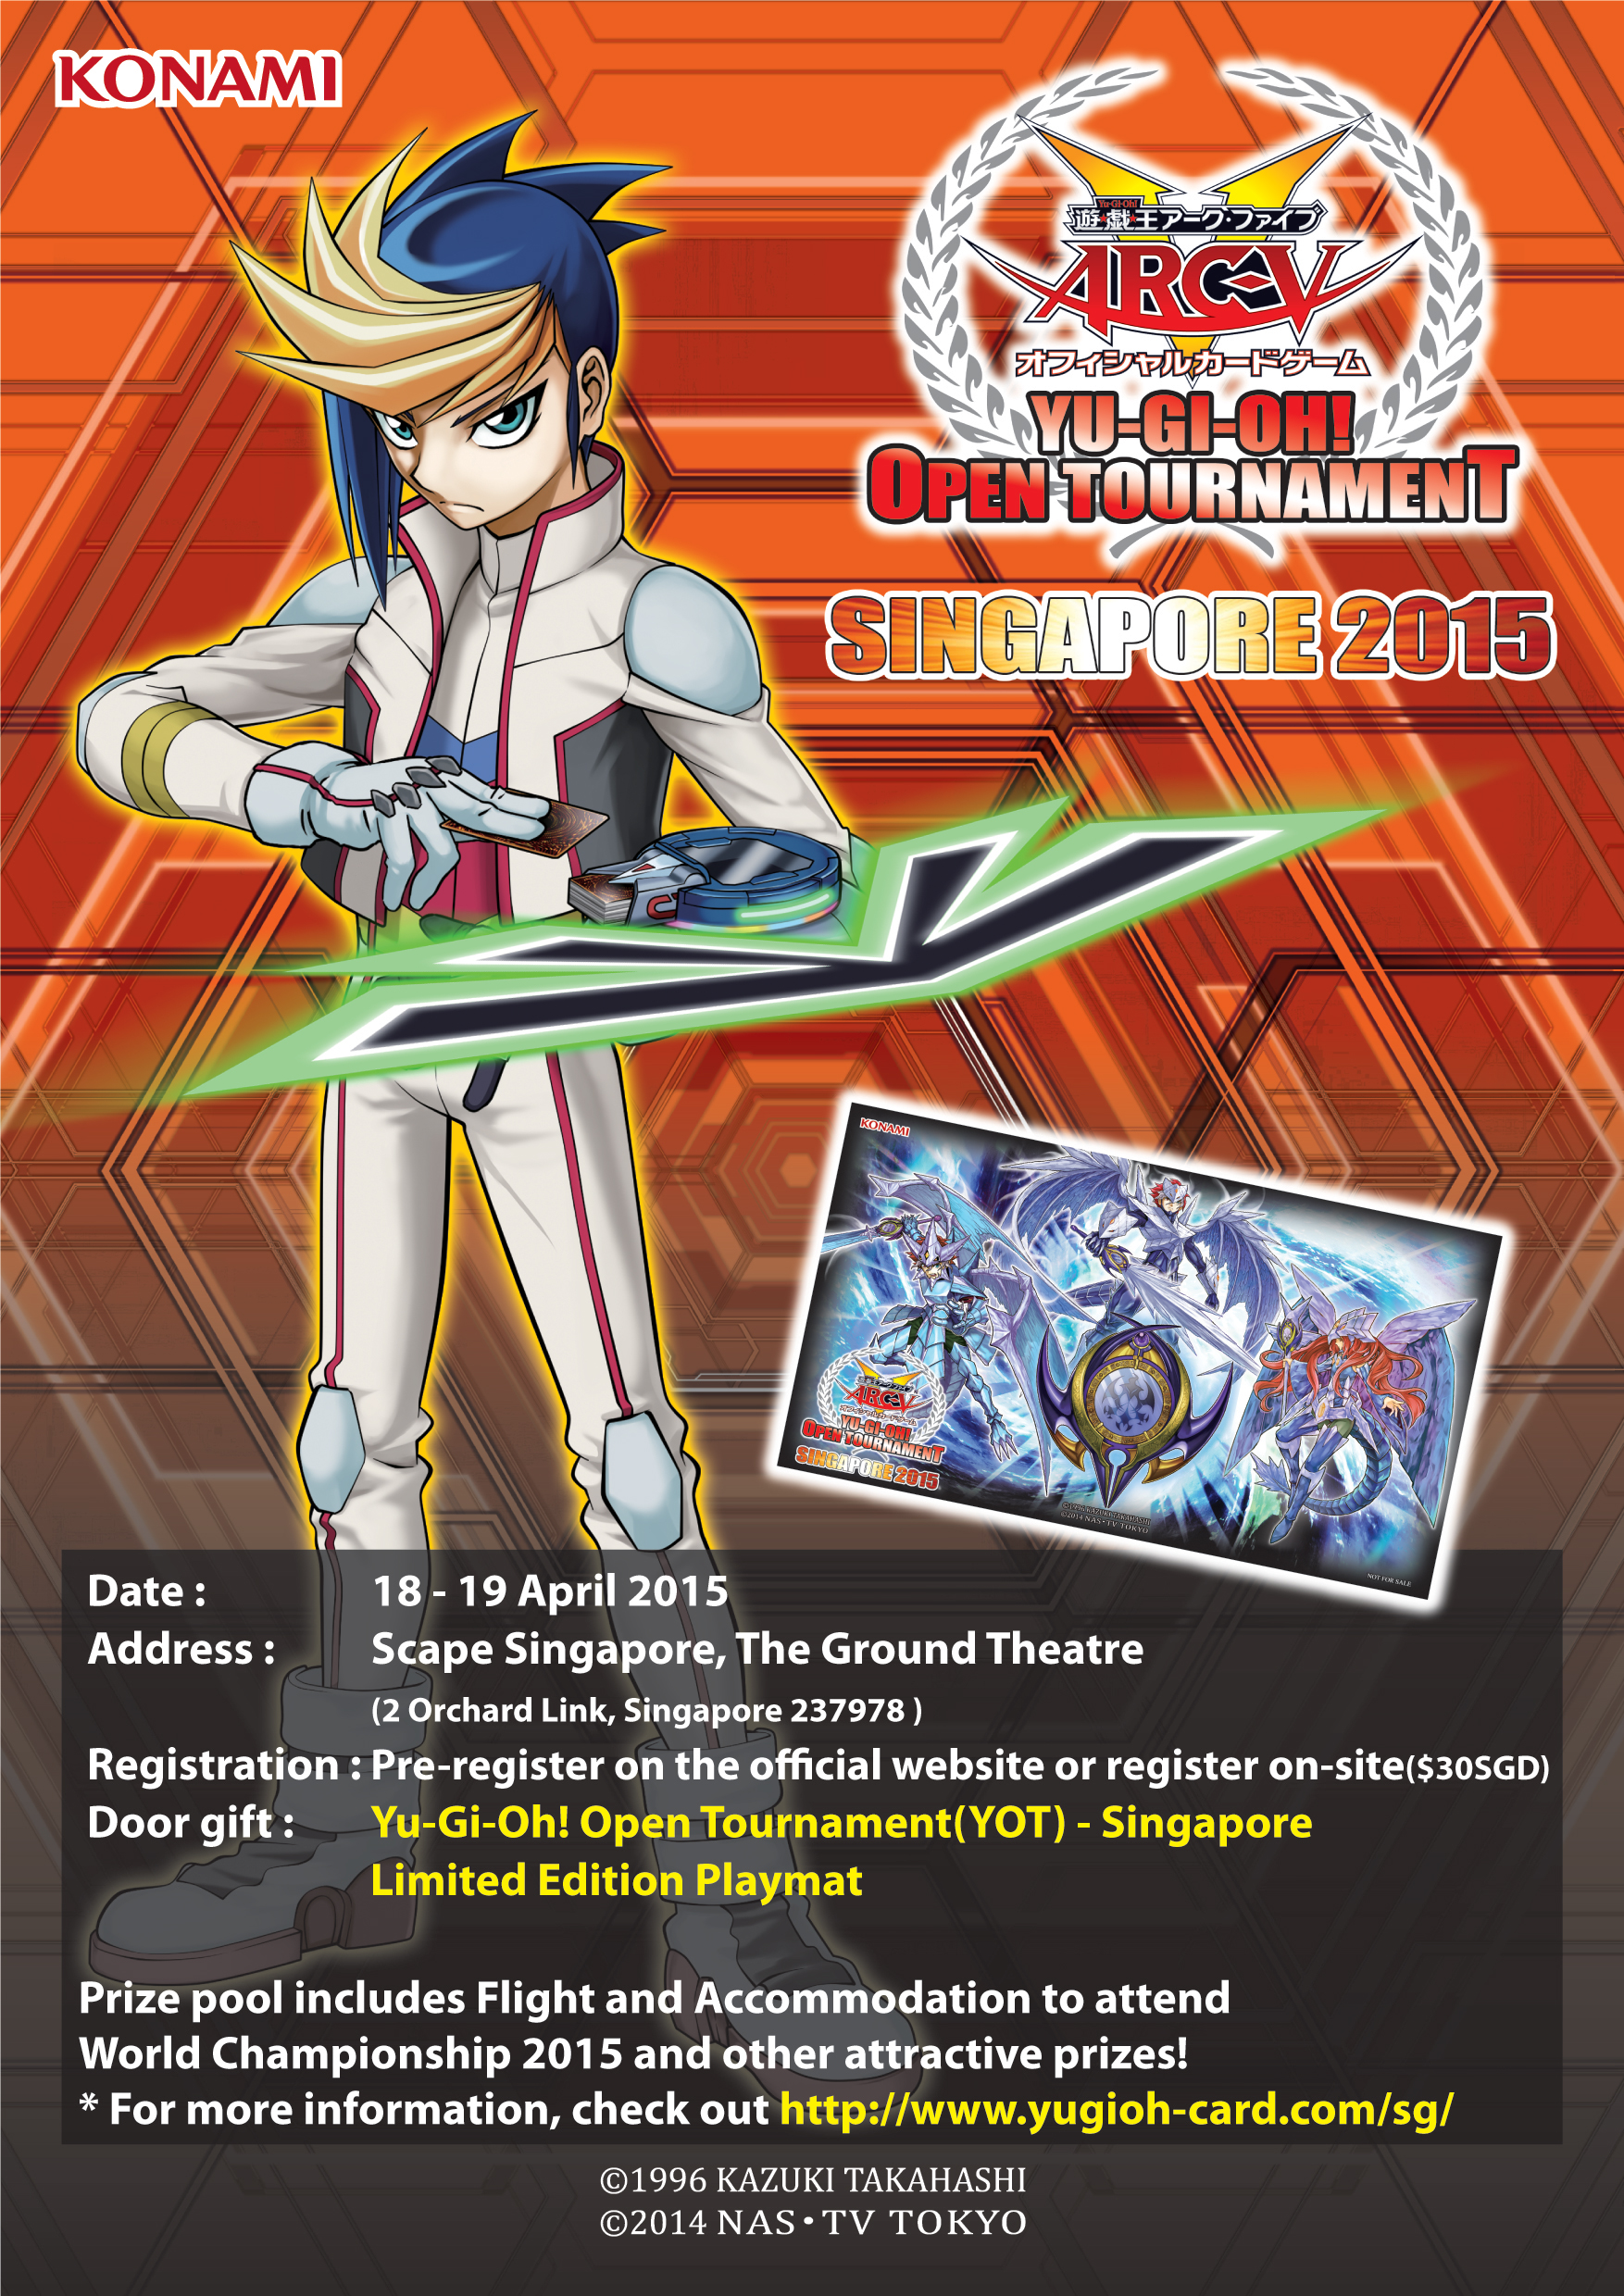 events  yugioh ocg duel monsters card game asia